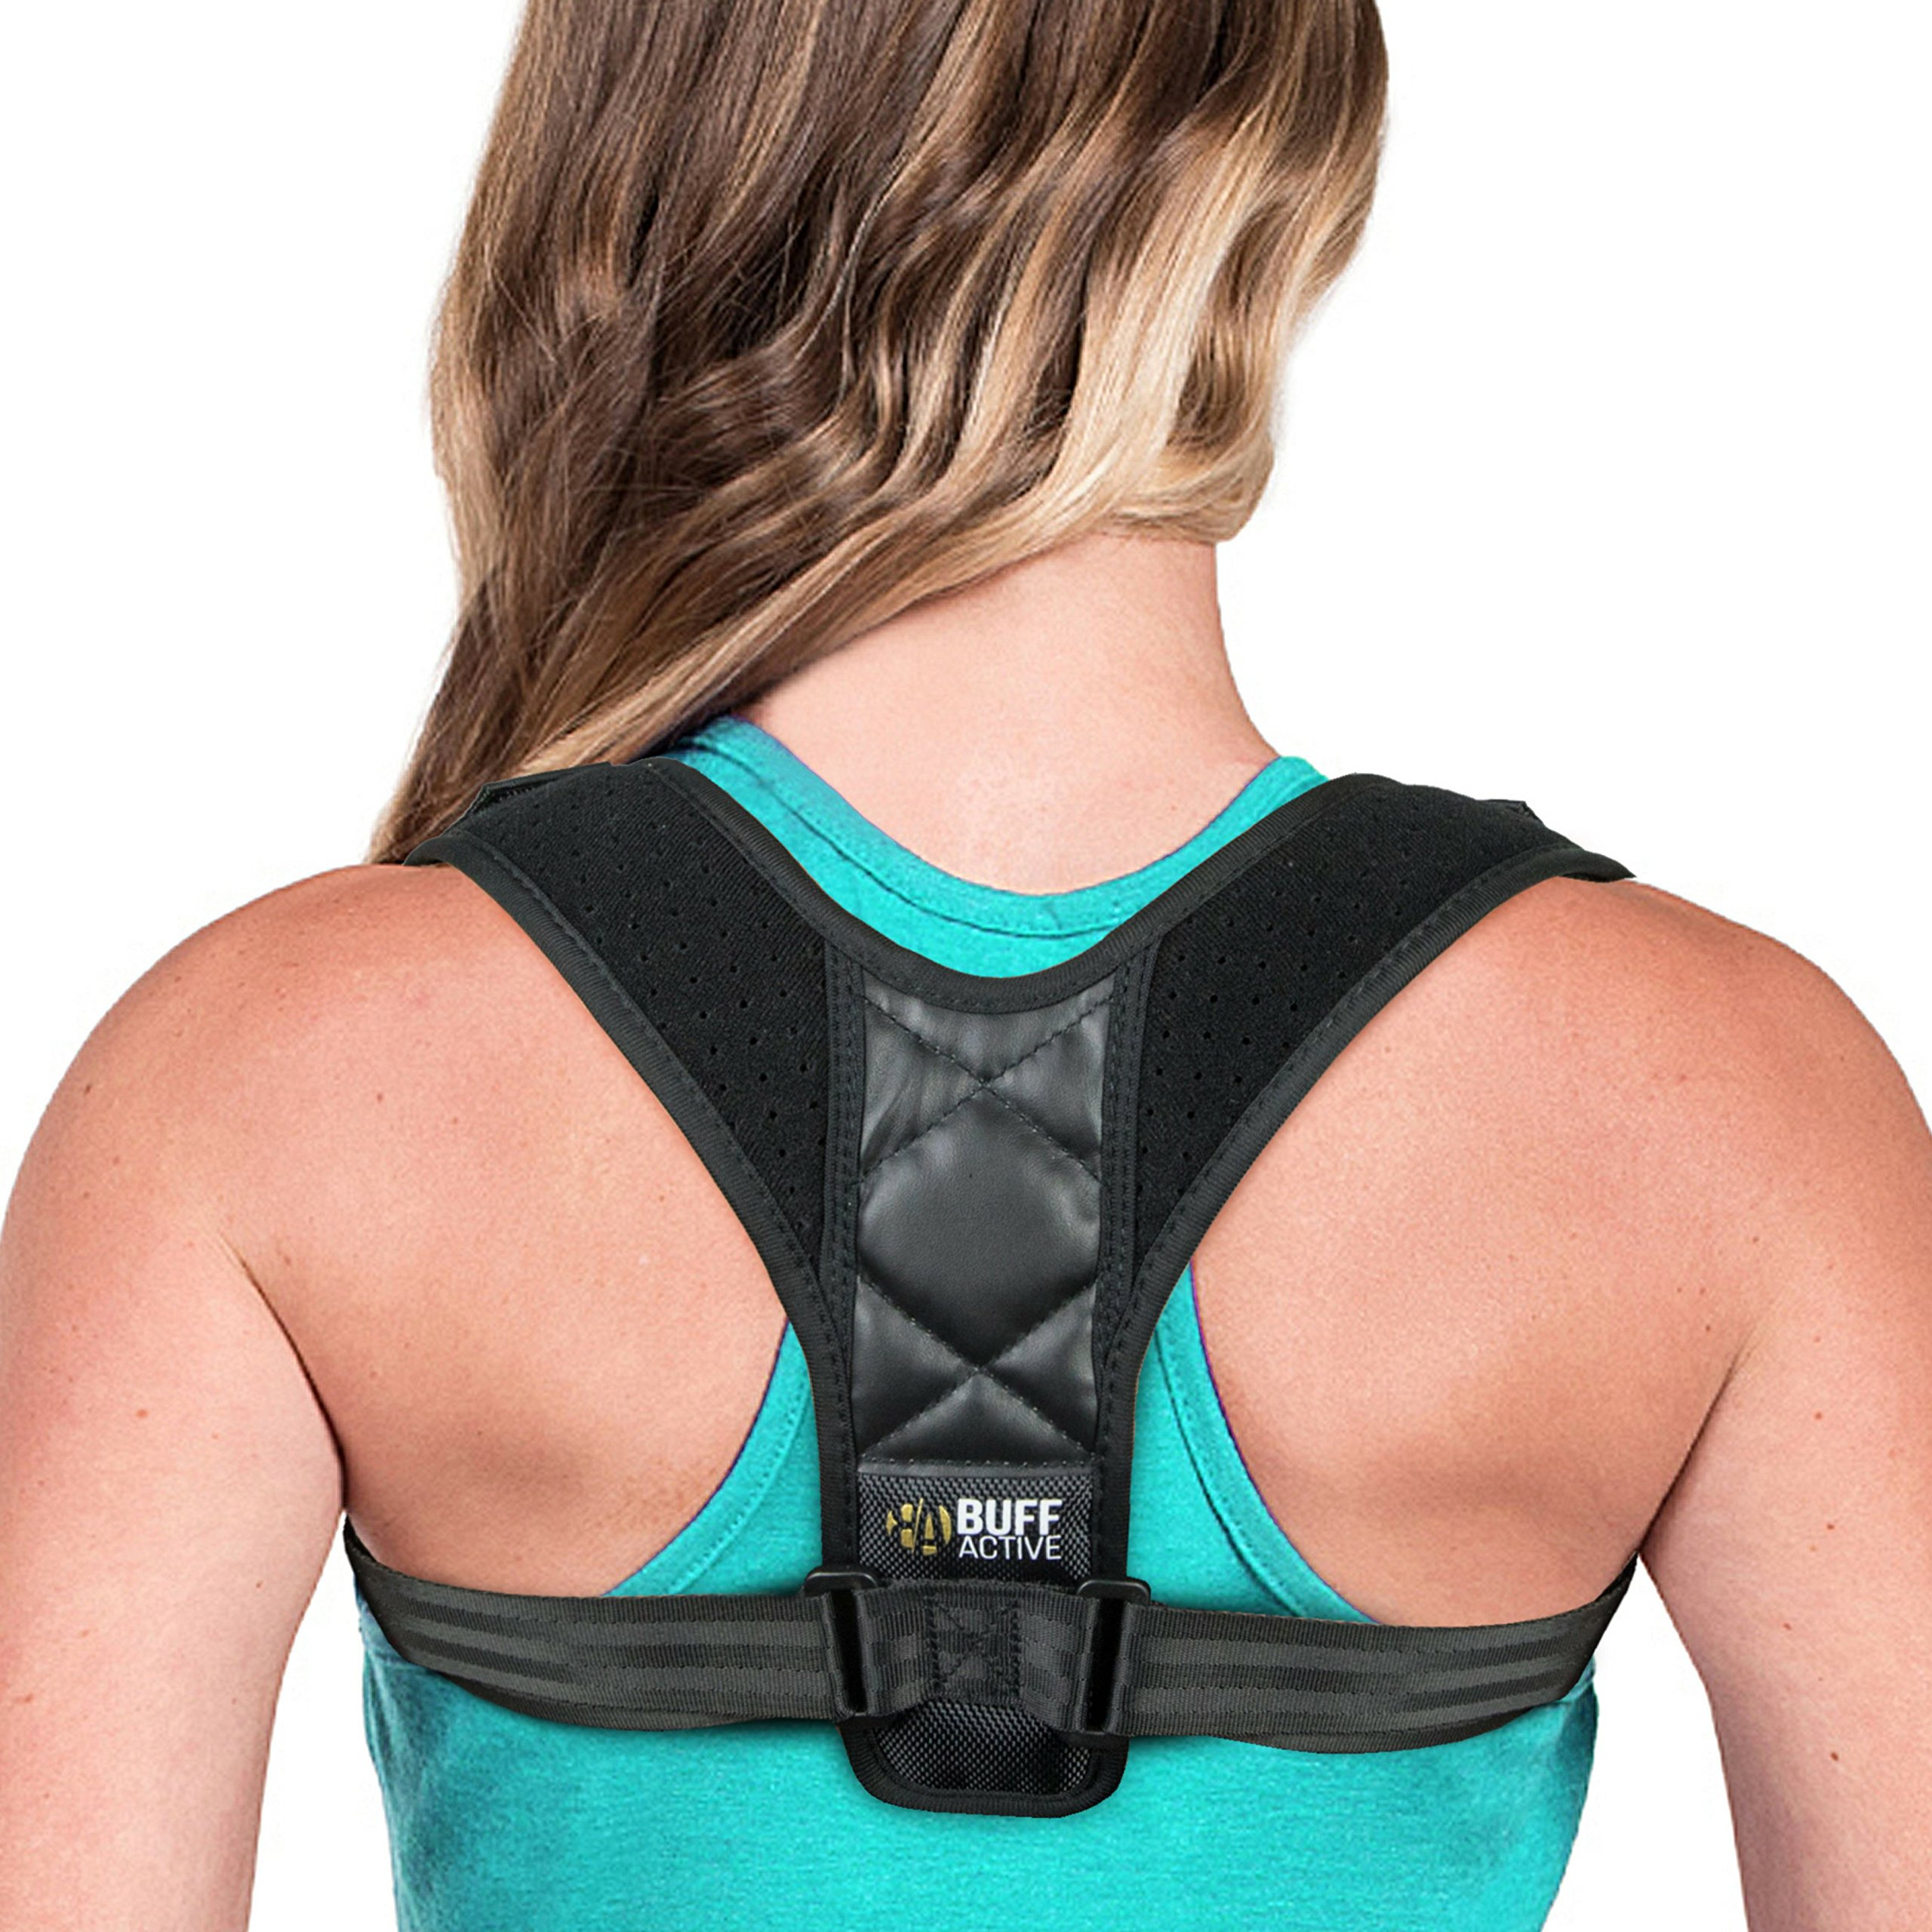 Back Posture Corrector Brace for Women & Men- Adjustable and Comfortable Upper Shoulder Thoracic & Clavicle Support- Easy Use- Perfect for Better Upright Posture- Adults Teens Kids- Buff Active